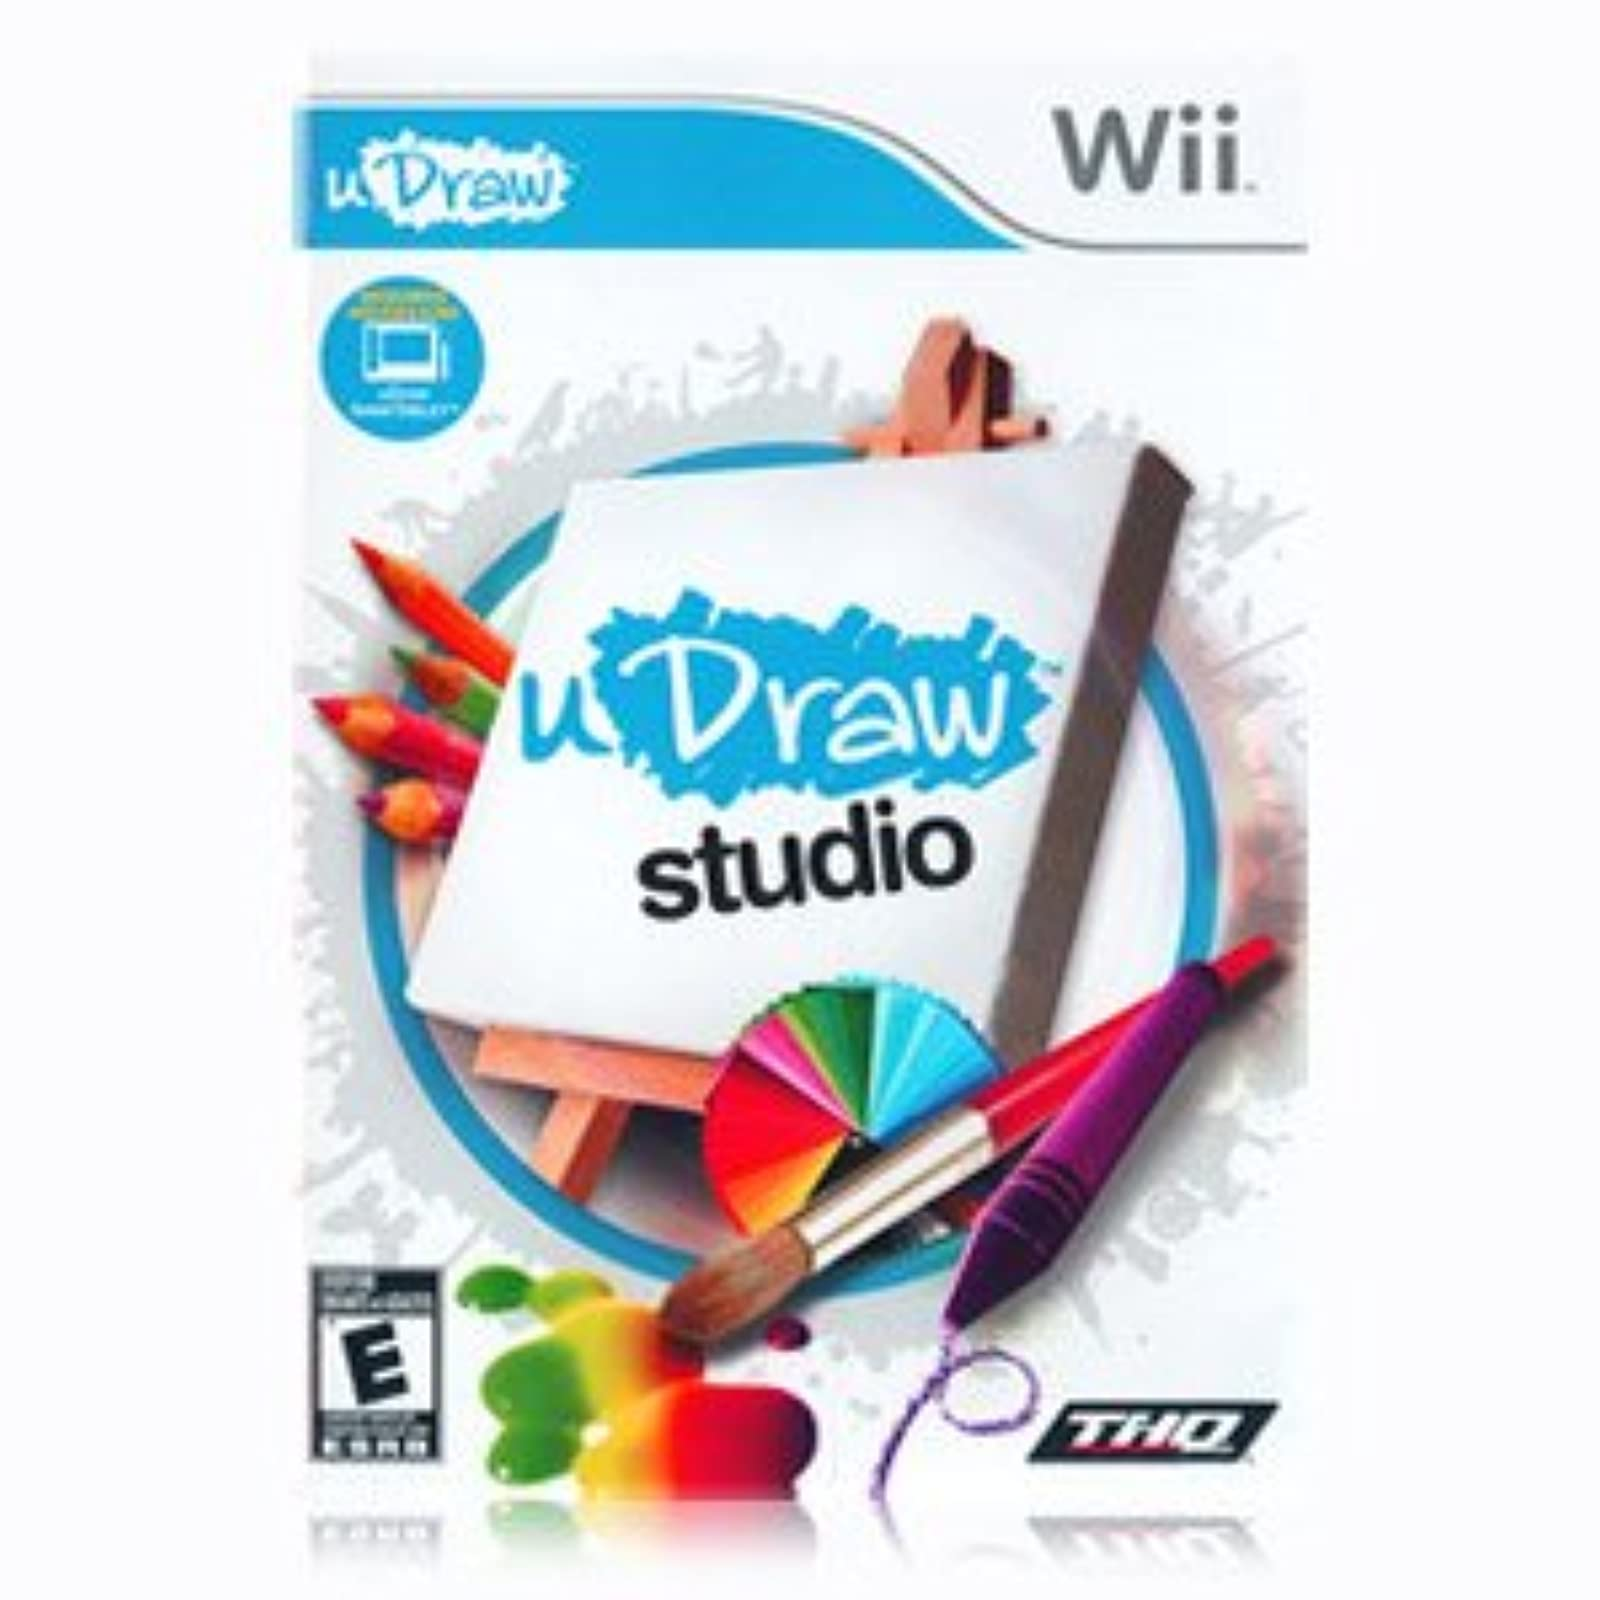 uDraw Studio Game For Wii And Wii U